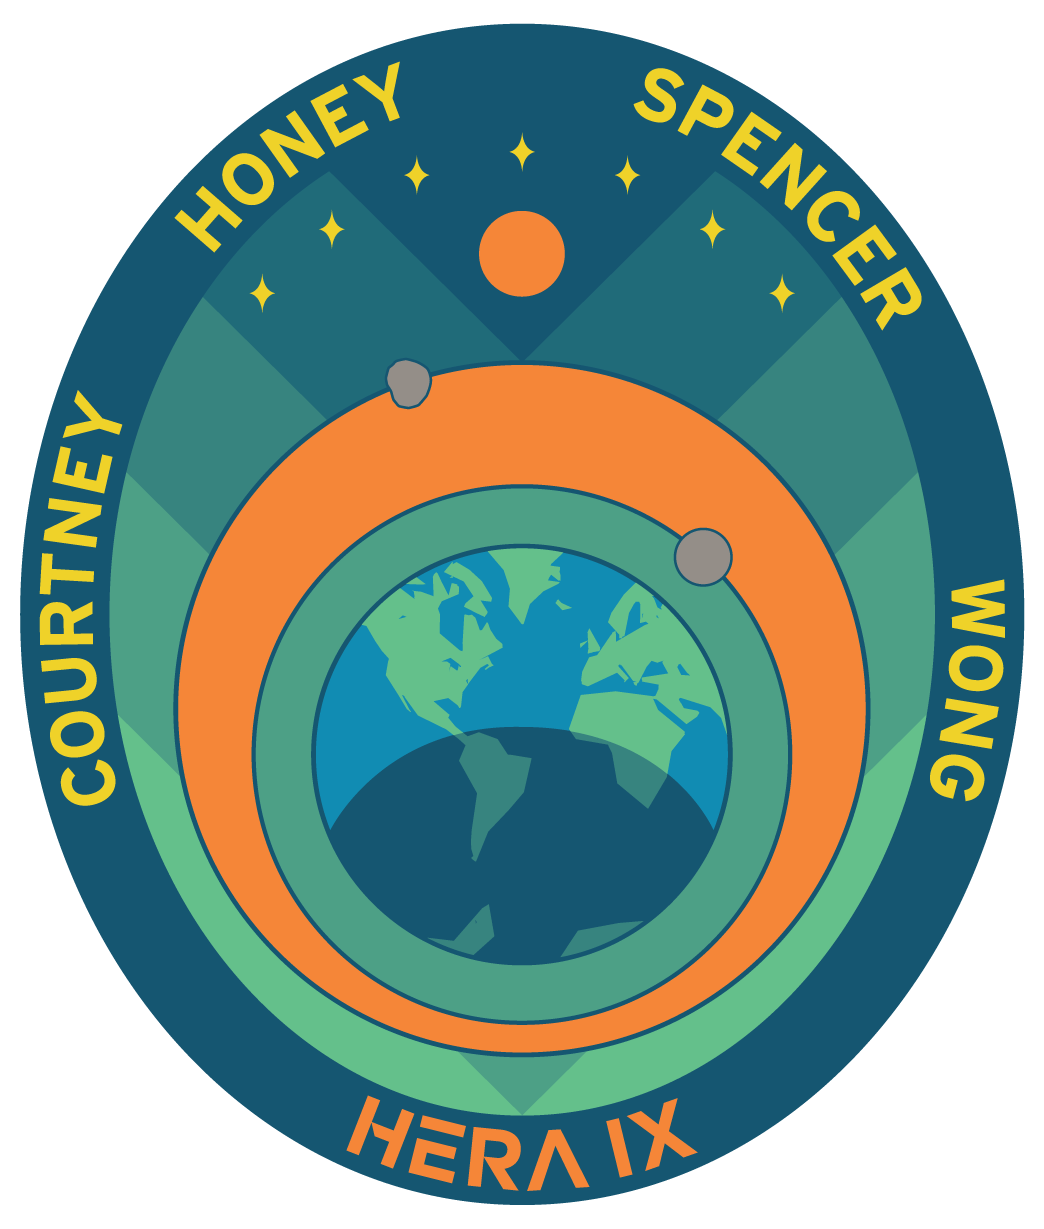 HERA IX Mission Patch [Julielynn Wong, M.D., Huffington Post]